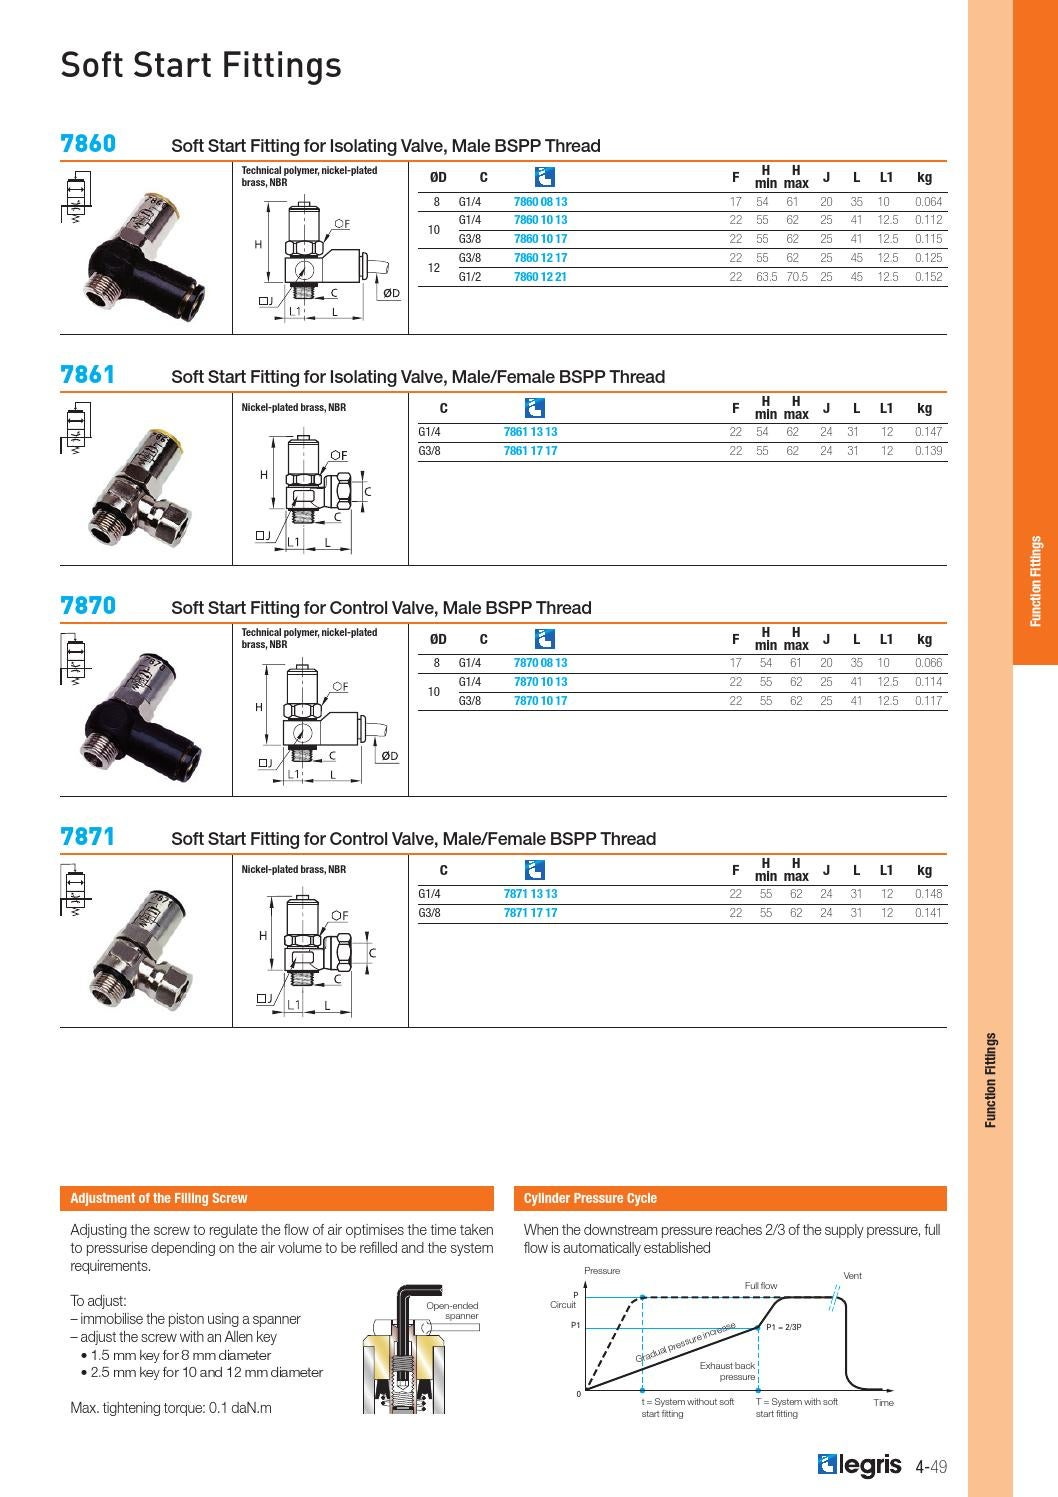 Technical Polymer Parker 7860 10 17 Pneumatic Soft Start Fitting G3//8 and 10 mm Soft Start for Isolating Valve